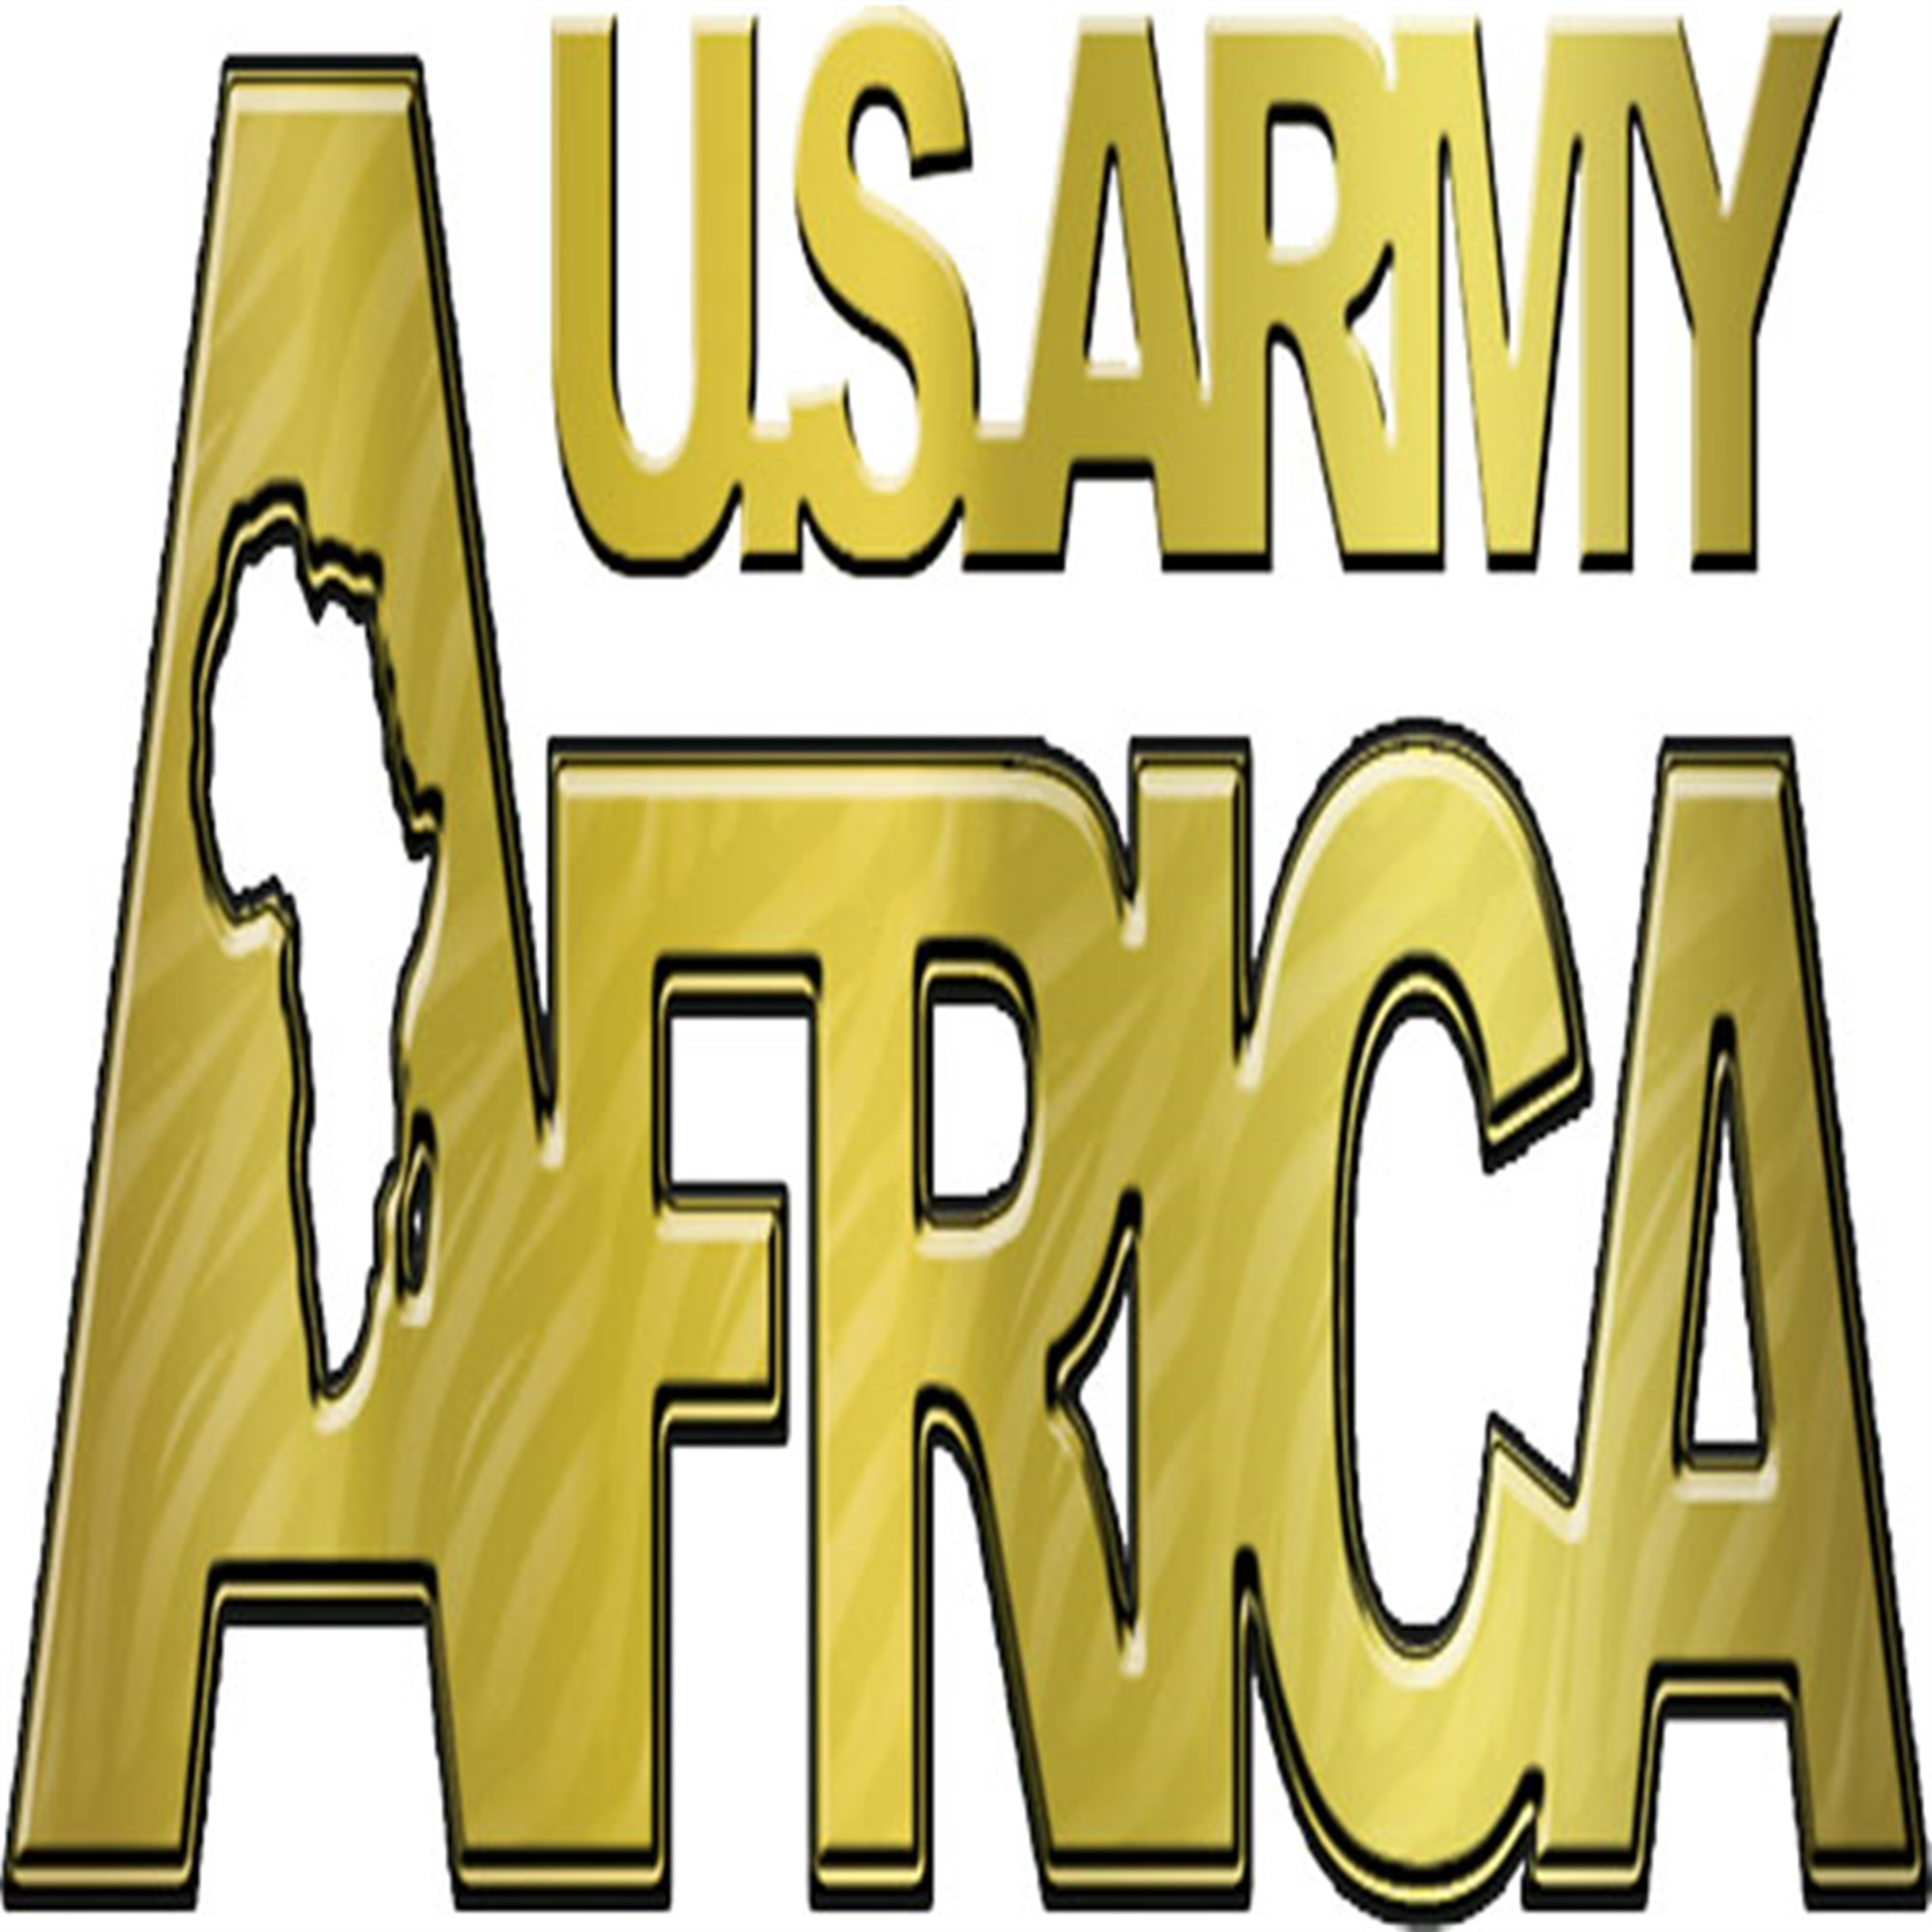 Operating from Vicenza, Italy, U.S. Army Africa (USARAF) conducts sustained security engagement with African land forces to promote security, stability, and peace.